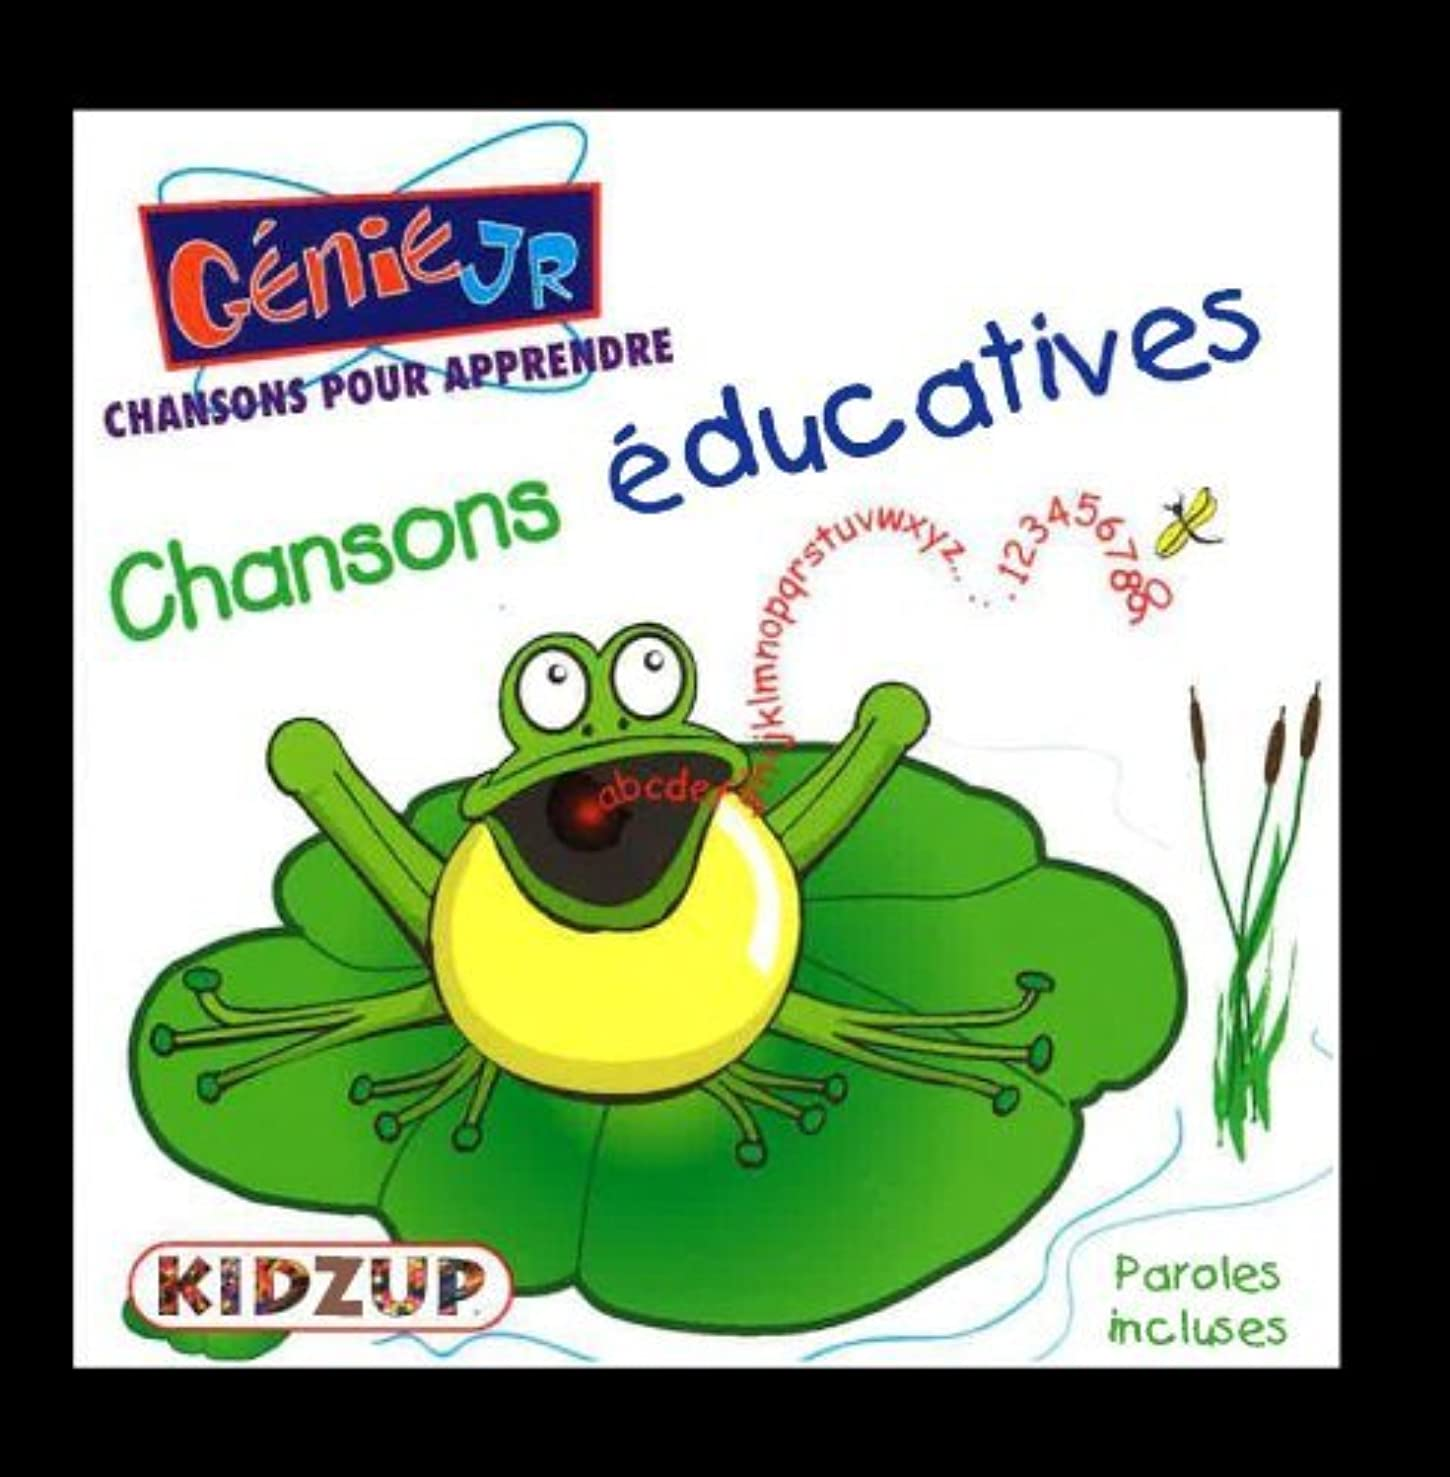 Chansons ??ducatives Vol.1 - G??nie Jr. by Kidzup Kids